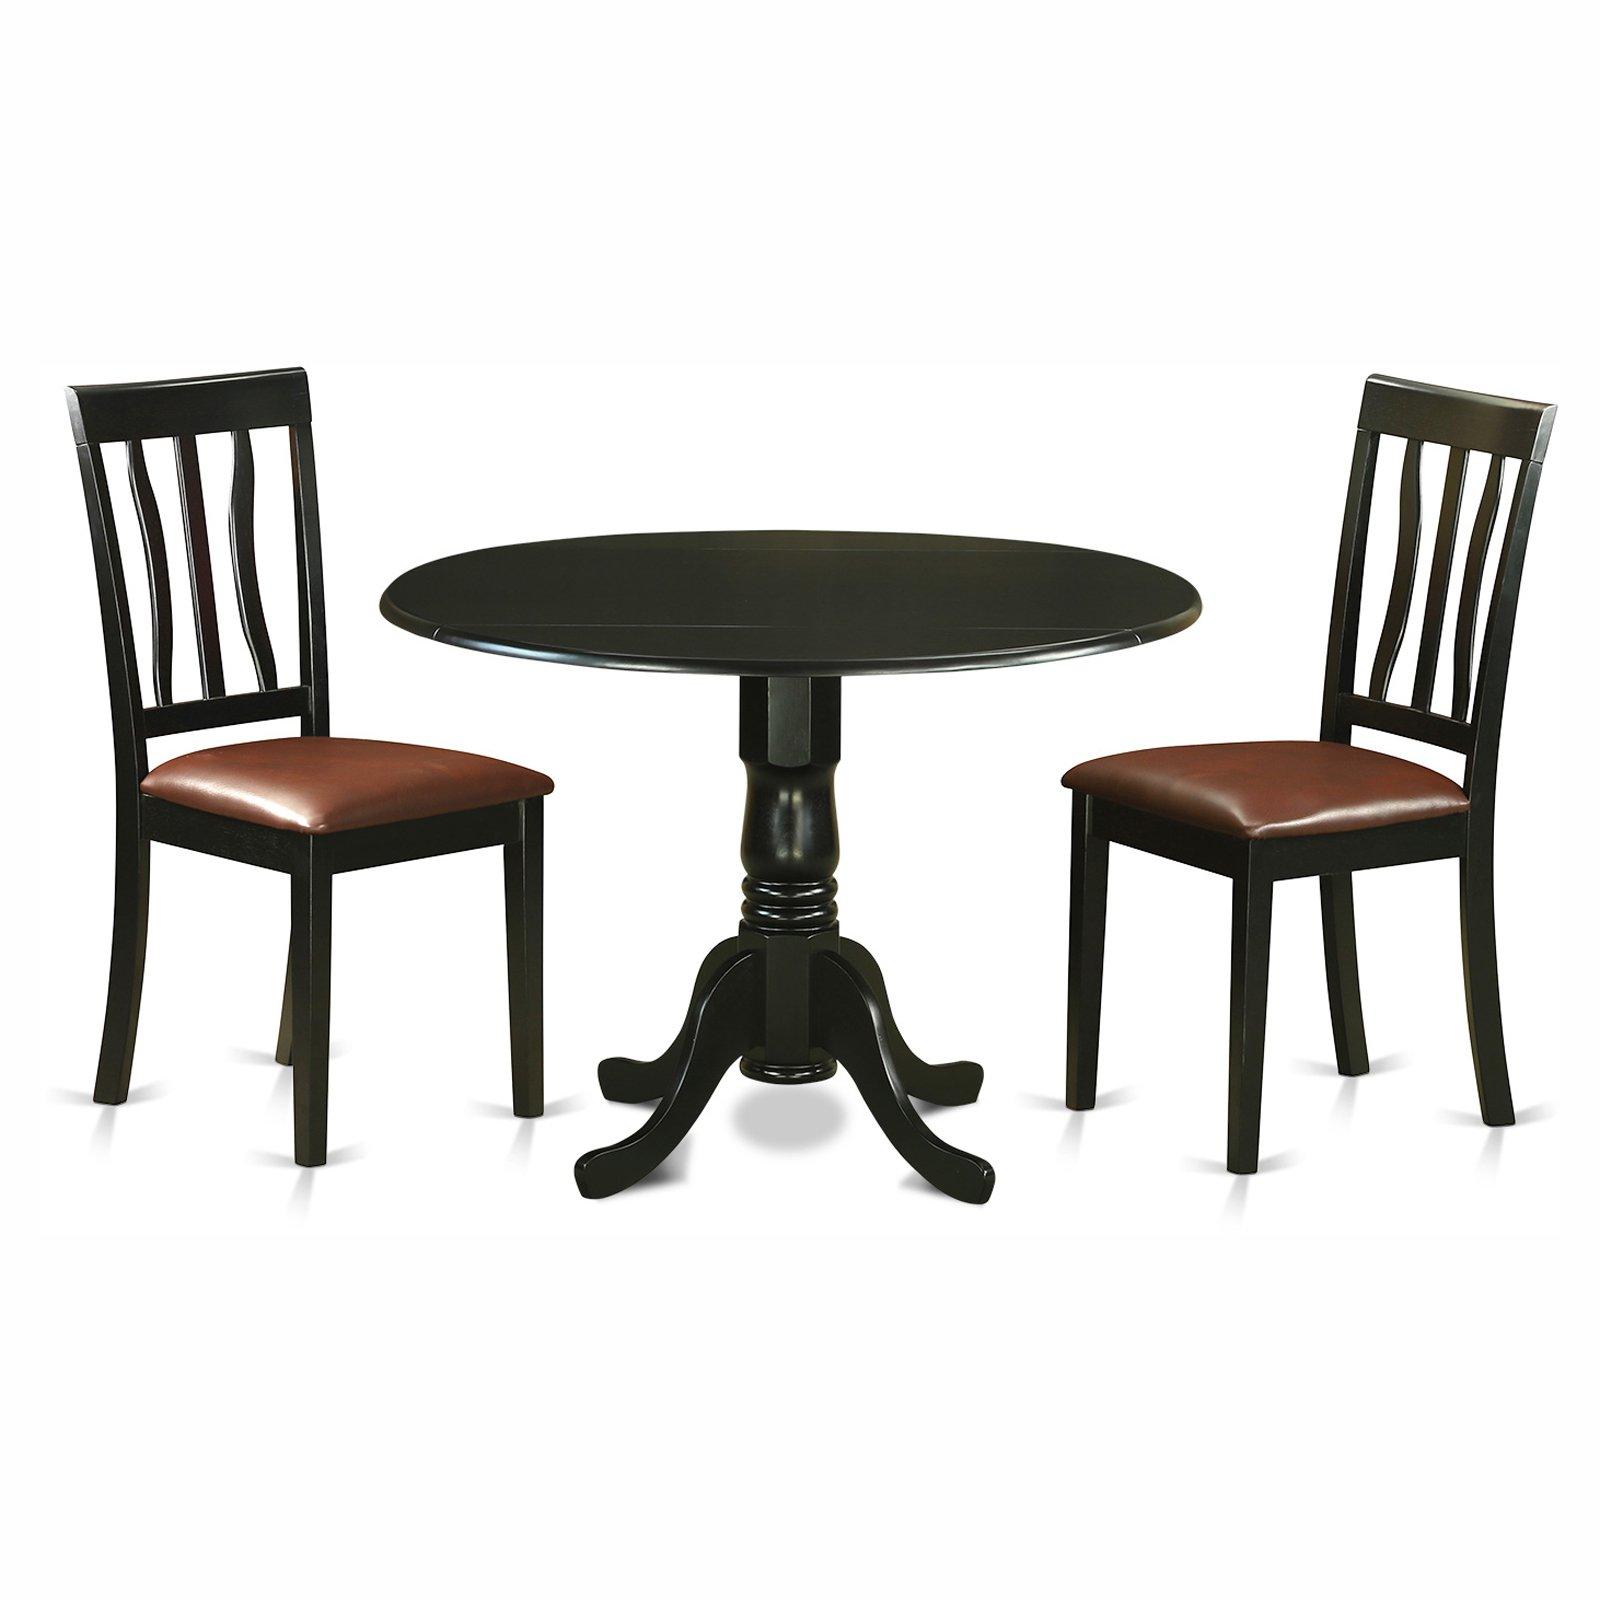 East West Furniture Dublin 3 Piece Drop Leaf Dining Table Set with Faux Leather Antique Chairs